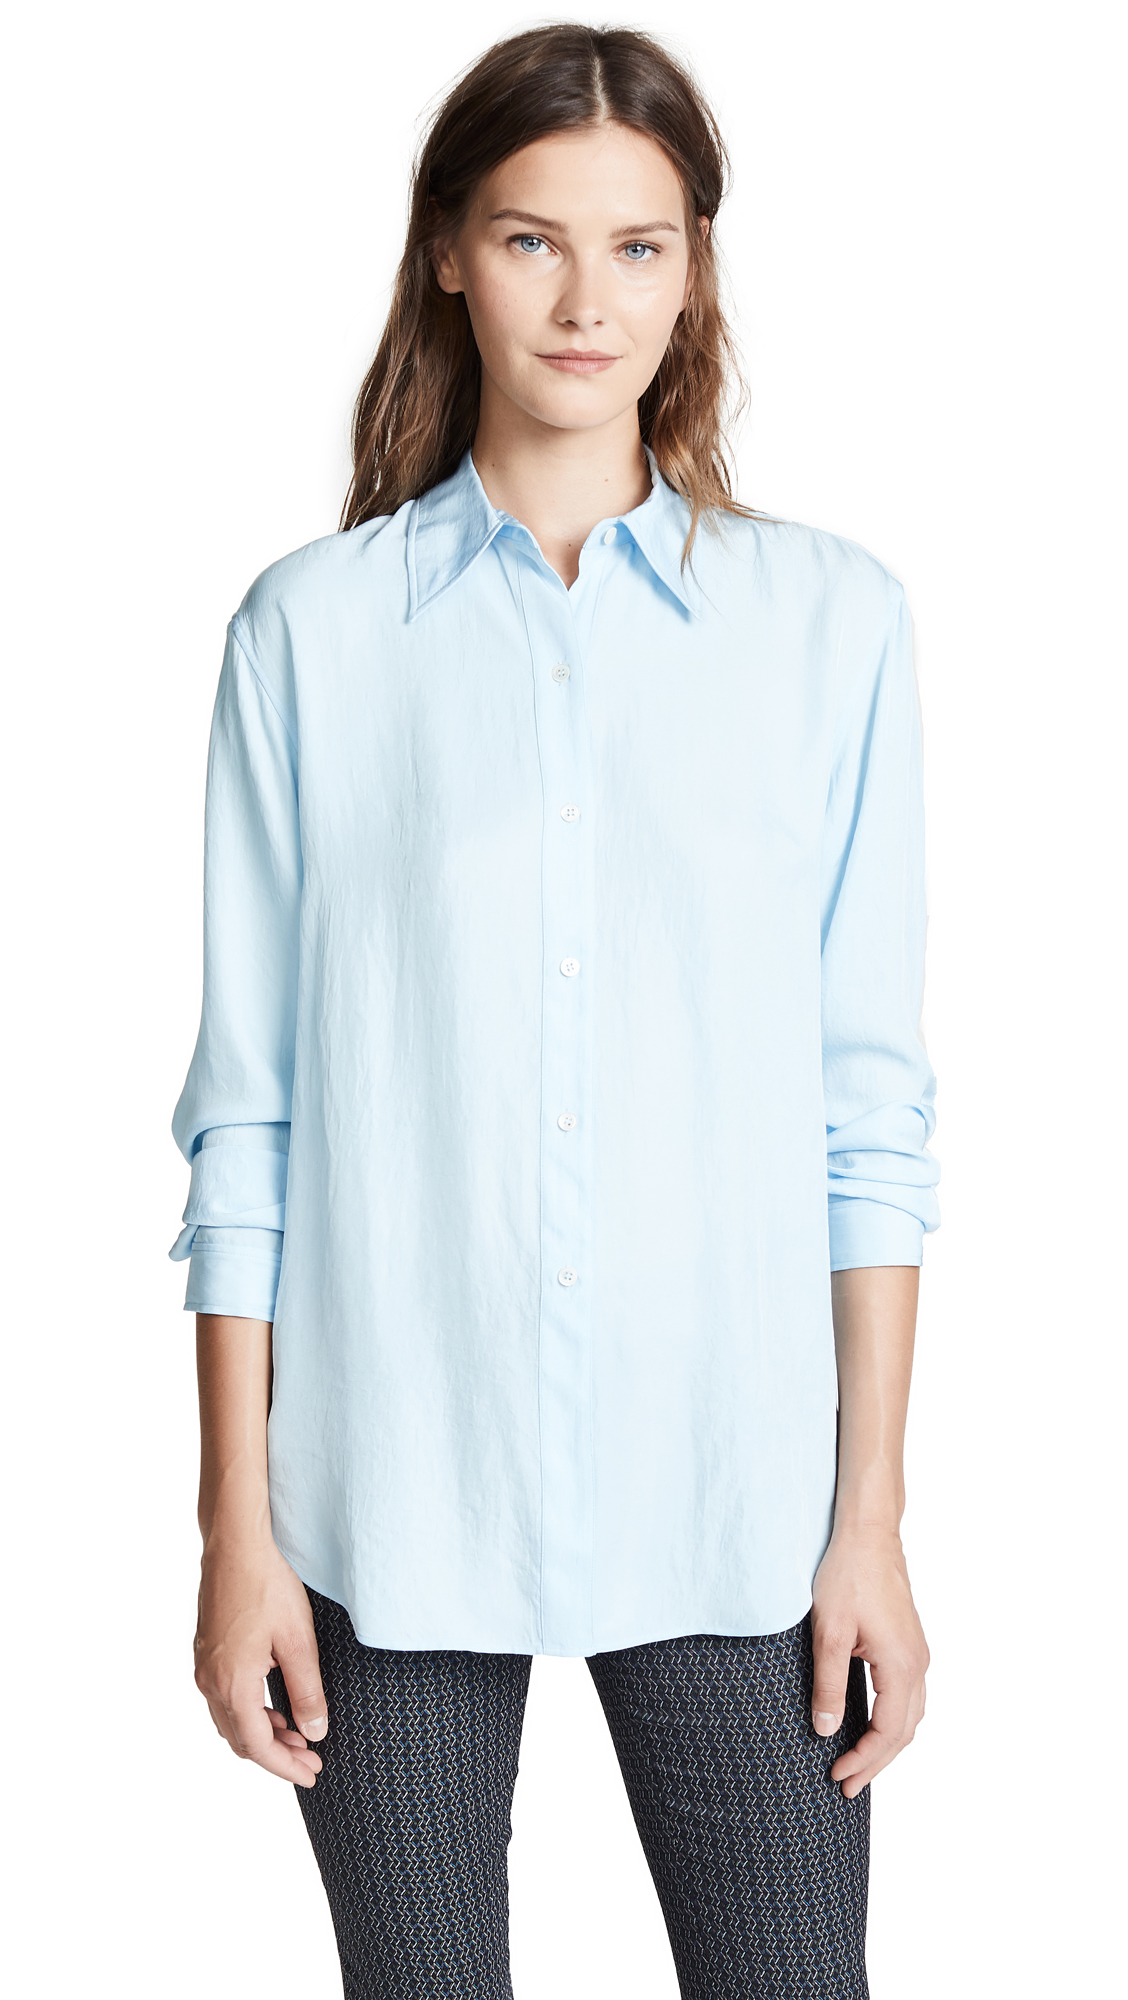 Theory Weekender Button Down Blouse - Pastel Blue